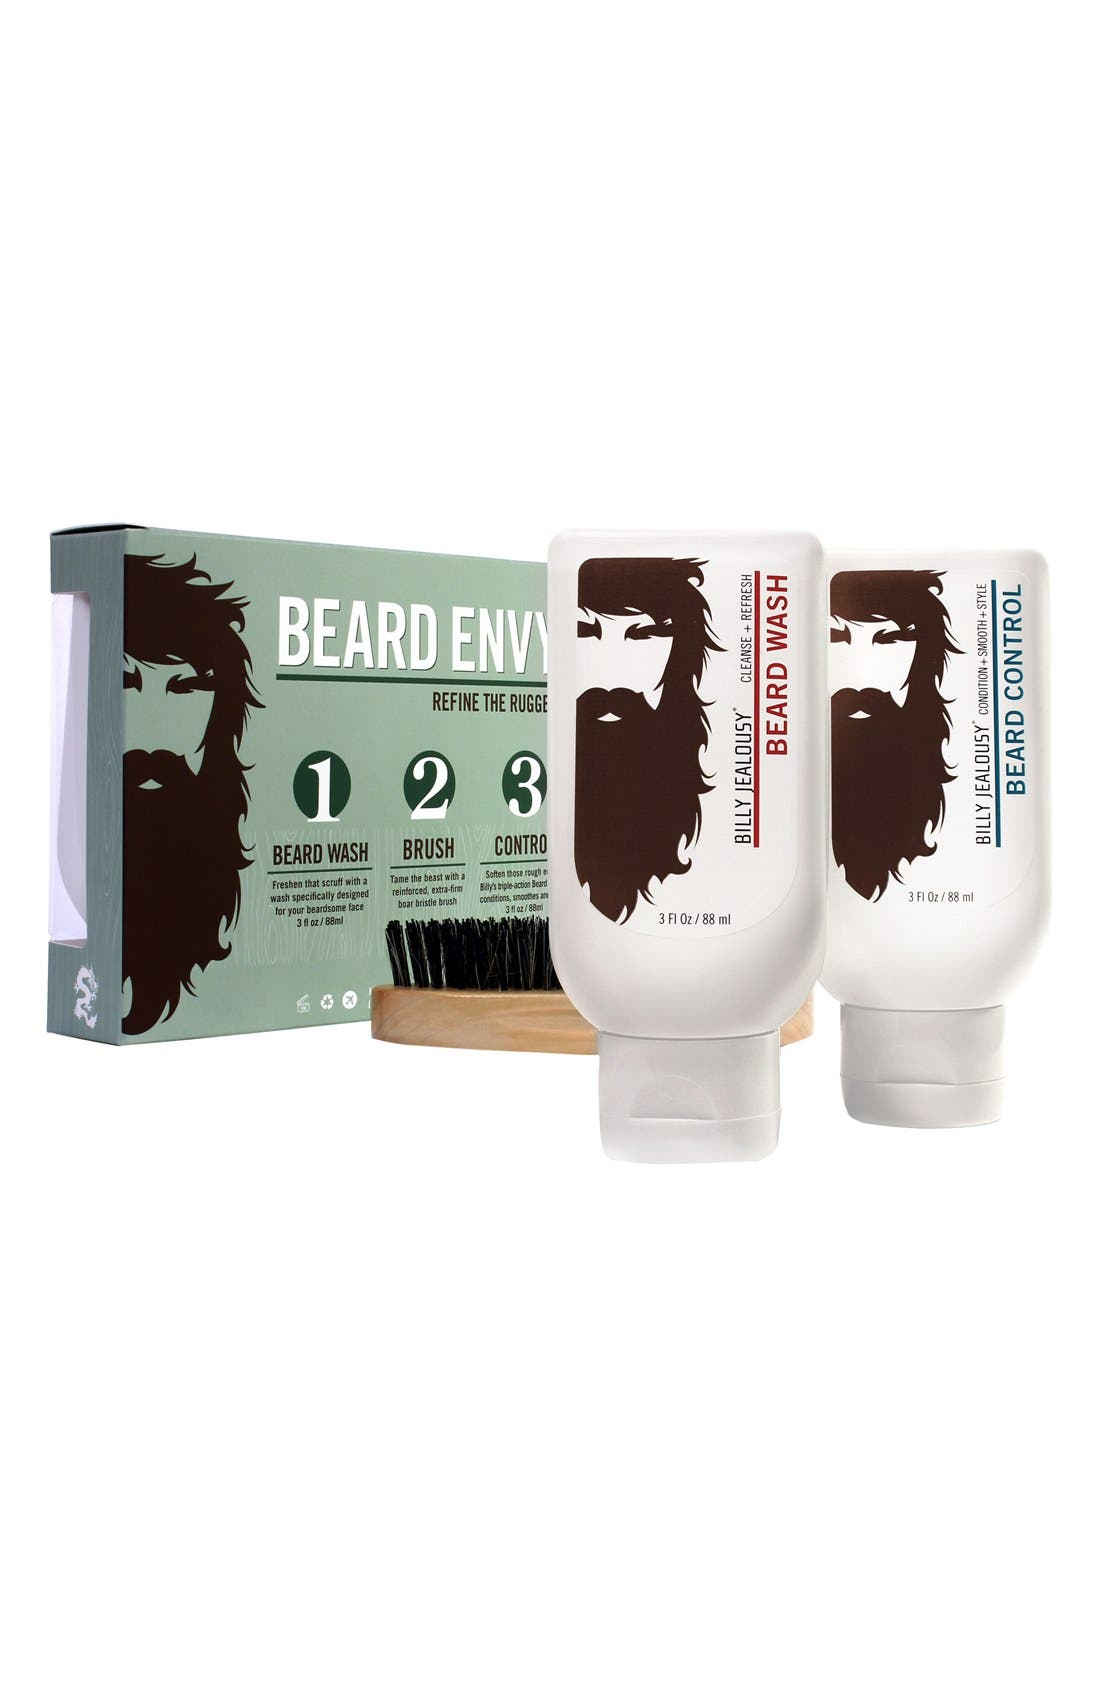 Billy Jealousy Beard Envy Kit ($30 Value)